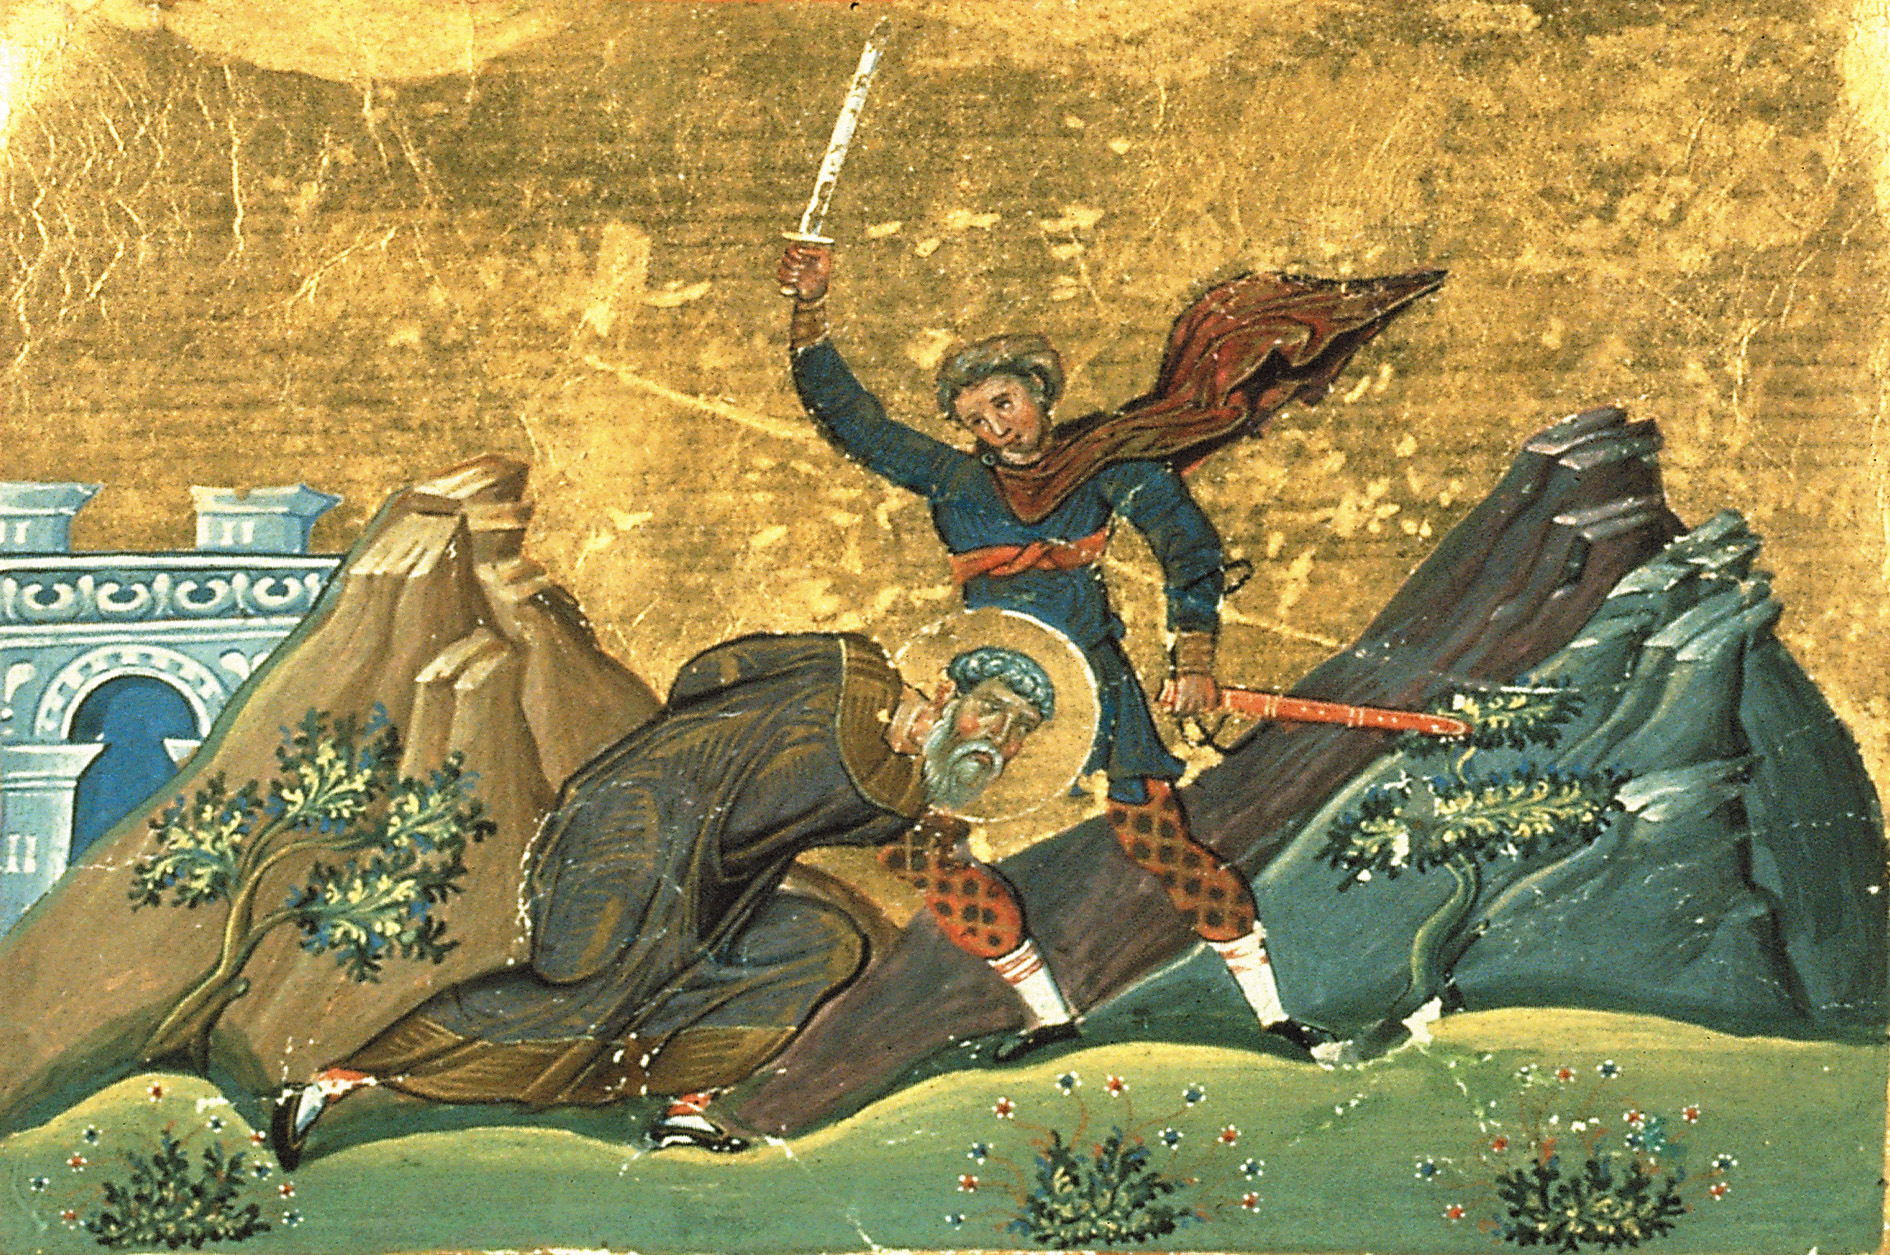 Saints et Saintes du jour - Page 14 Polyeuctus_of_Meletine_in_Armenia_%28Menologion_of_Basil_II%29